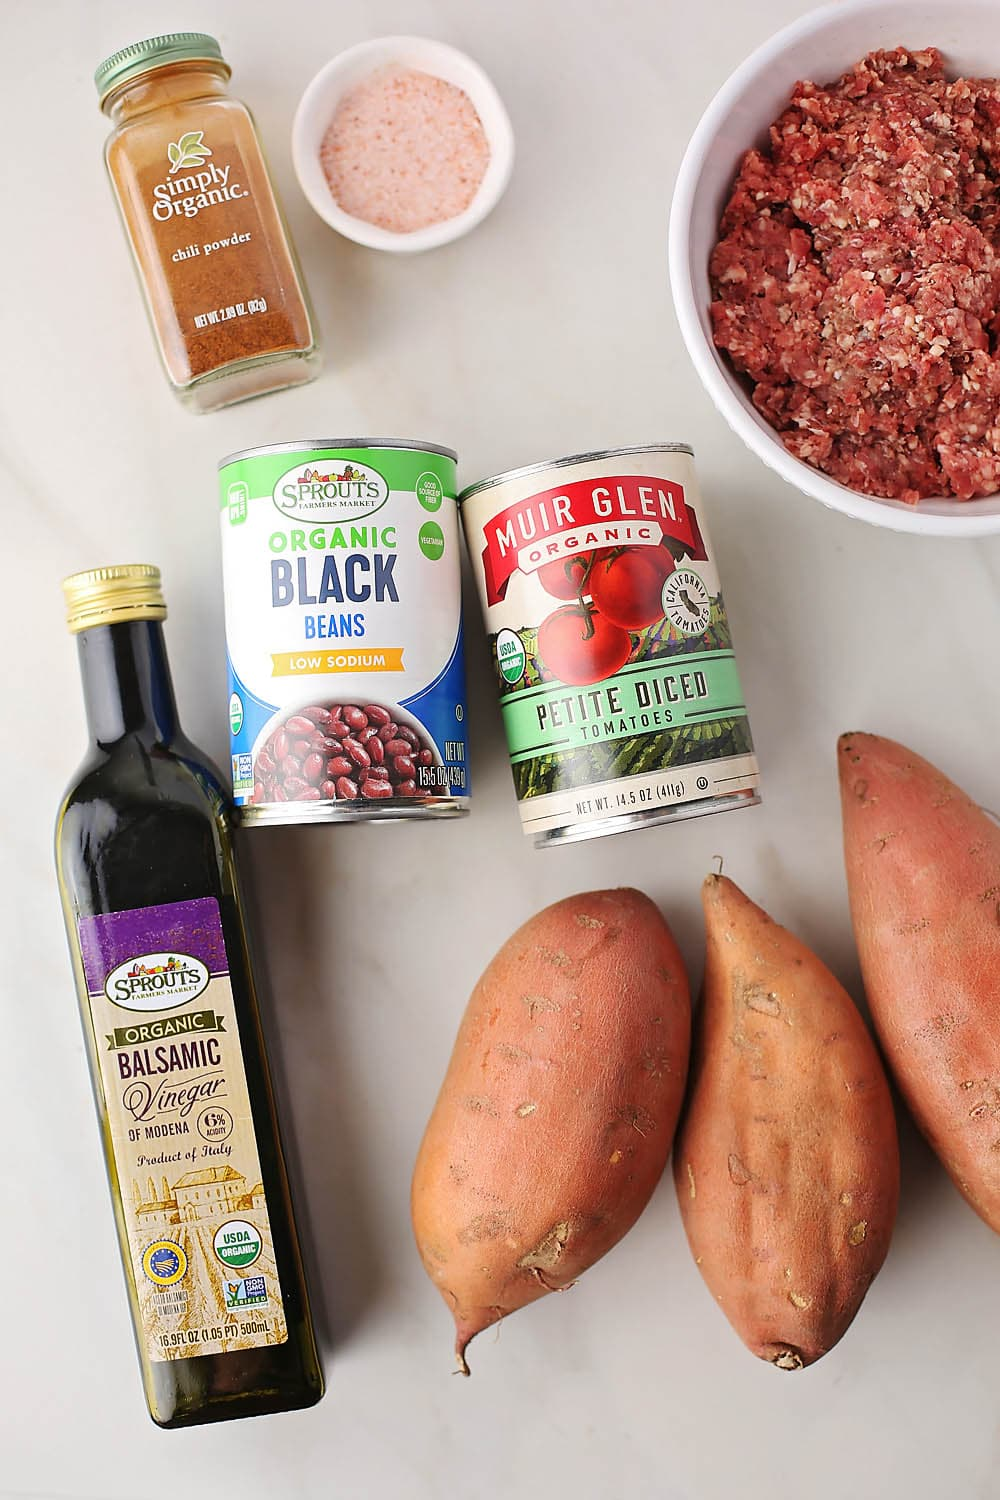 ingredients to make Quick Chili Baked Potatoes